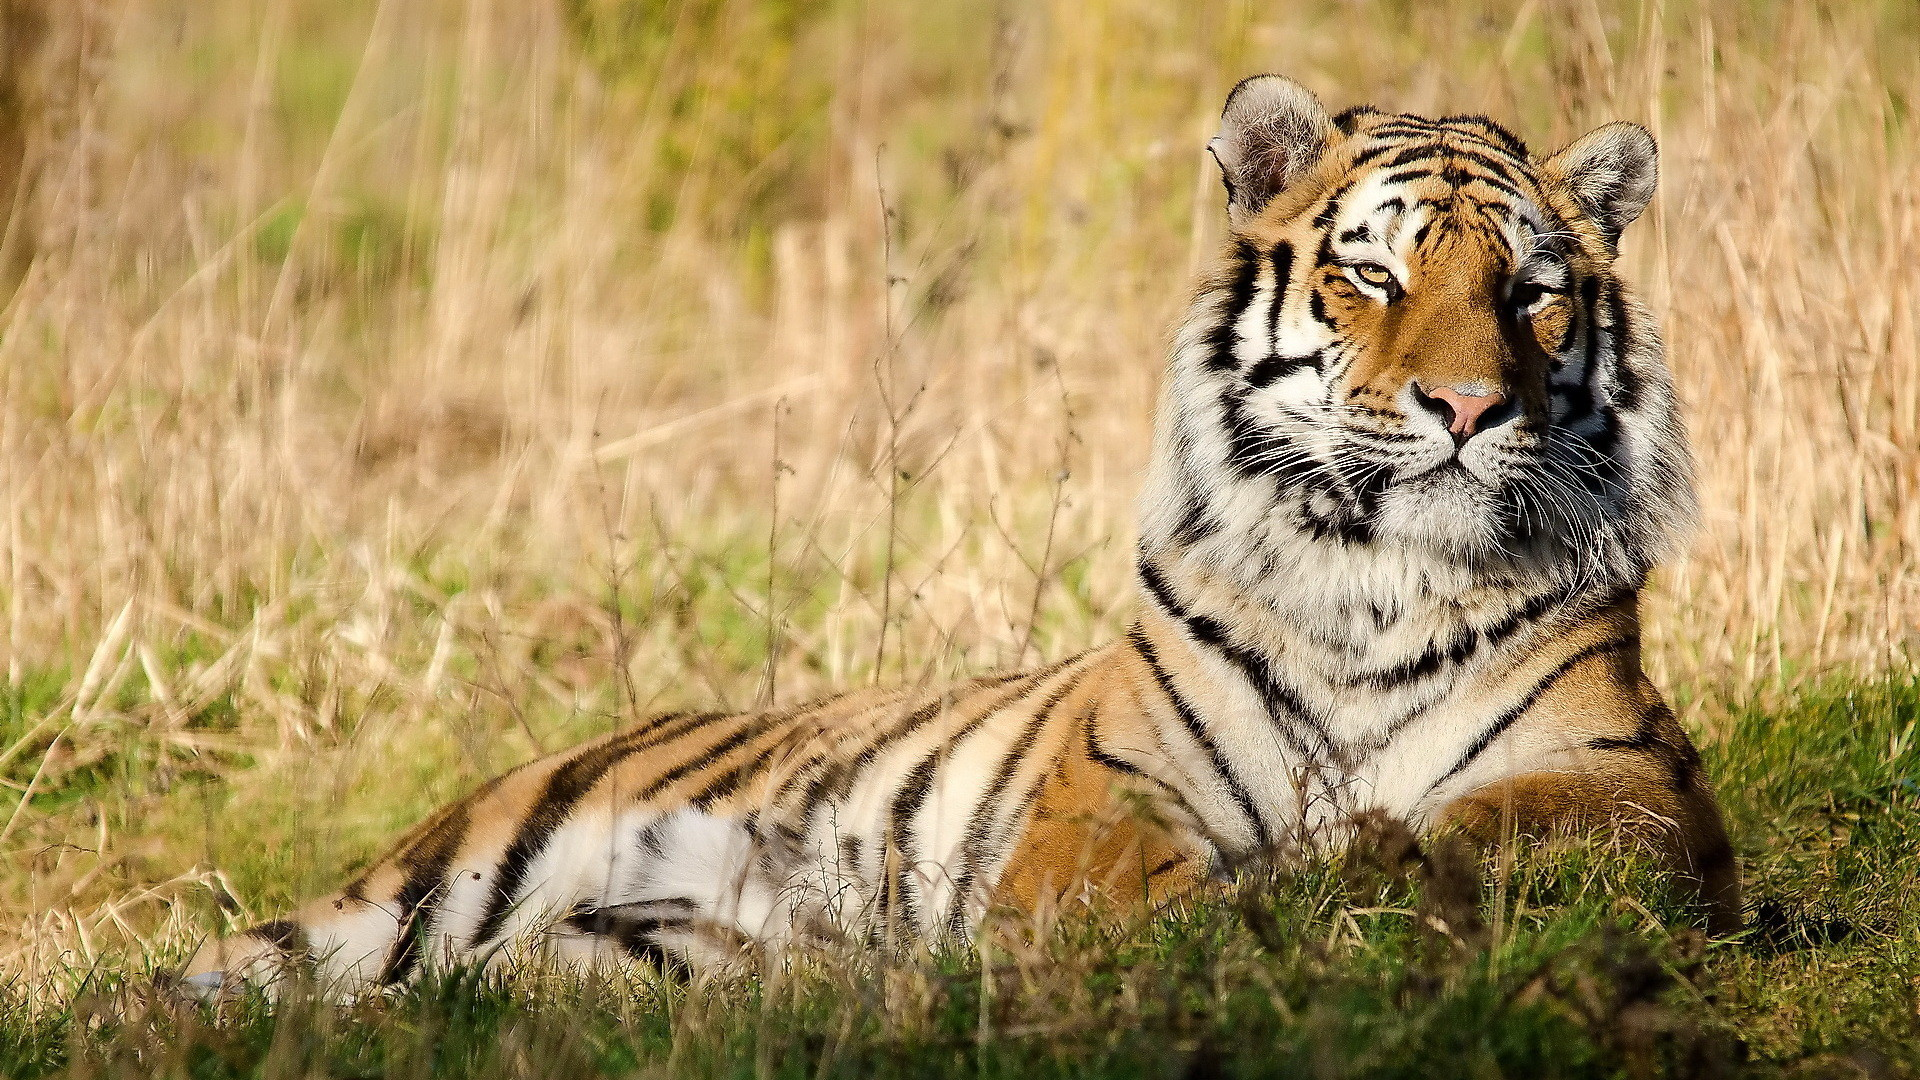 Amazing Tiger Wallpapers Best Of Wallpaper 16 Page 1